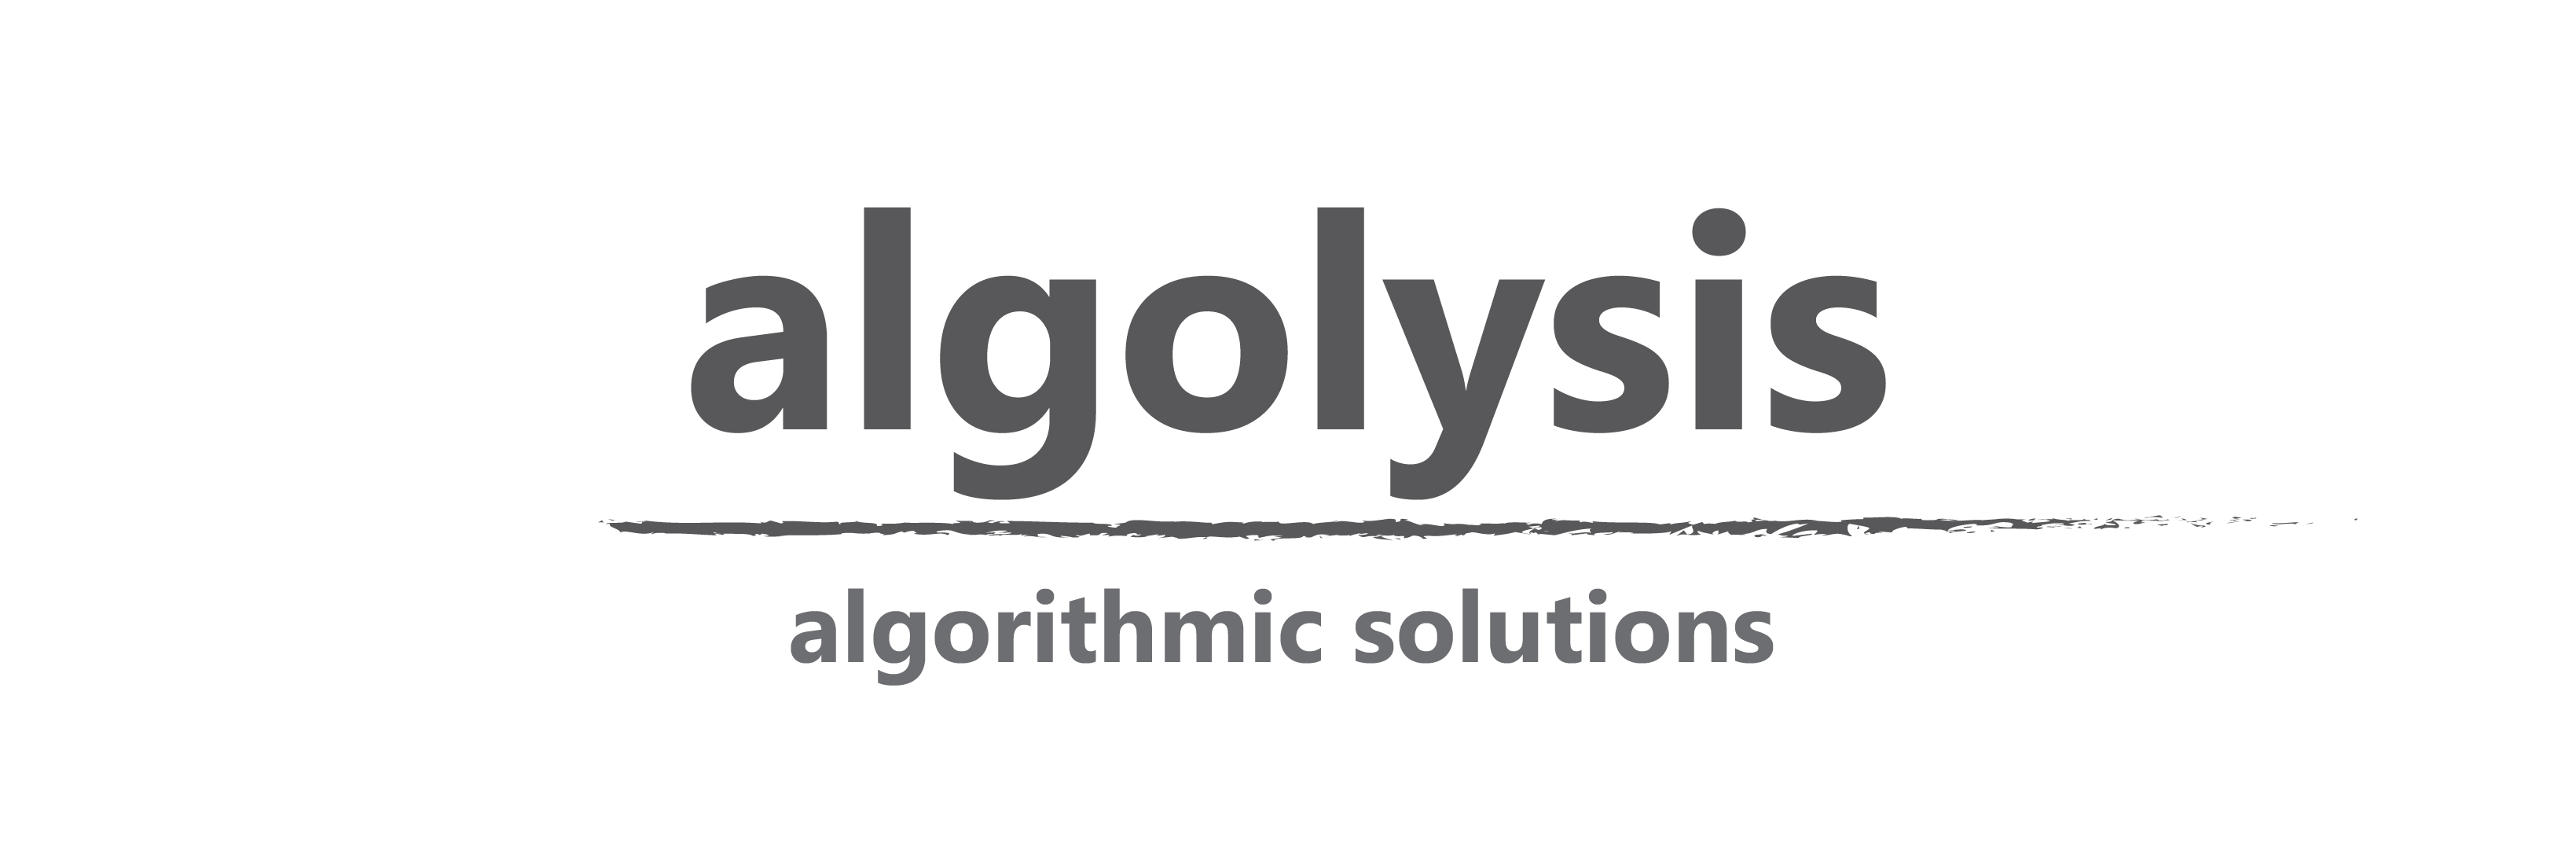 algolysis_corporate-identity_v4.1-Grayscale_LOGO-dark-on-white-text-only